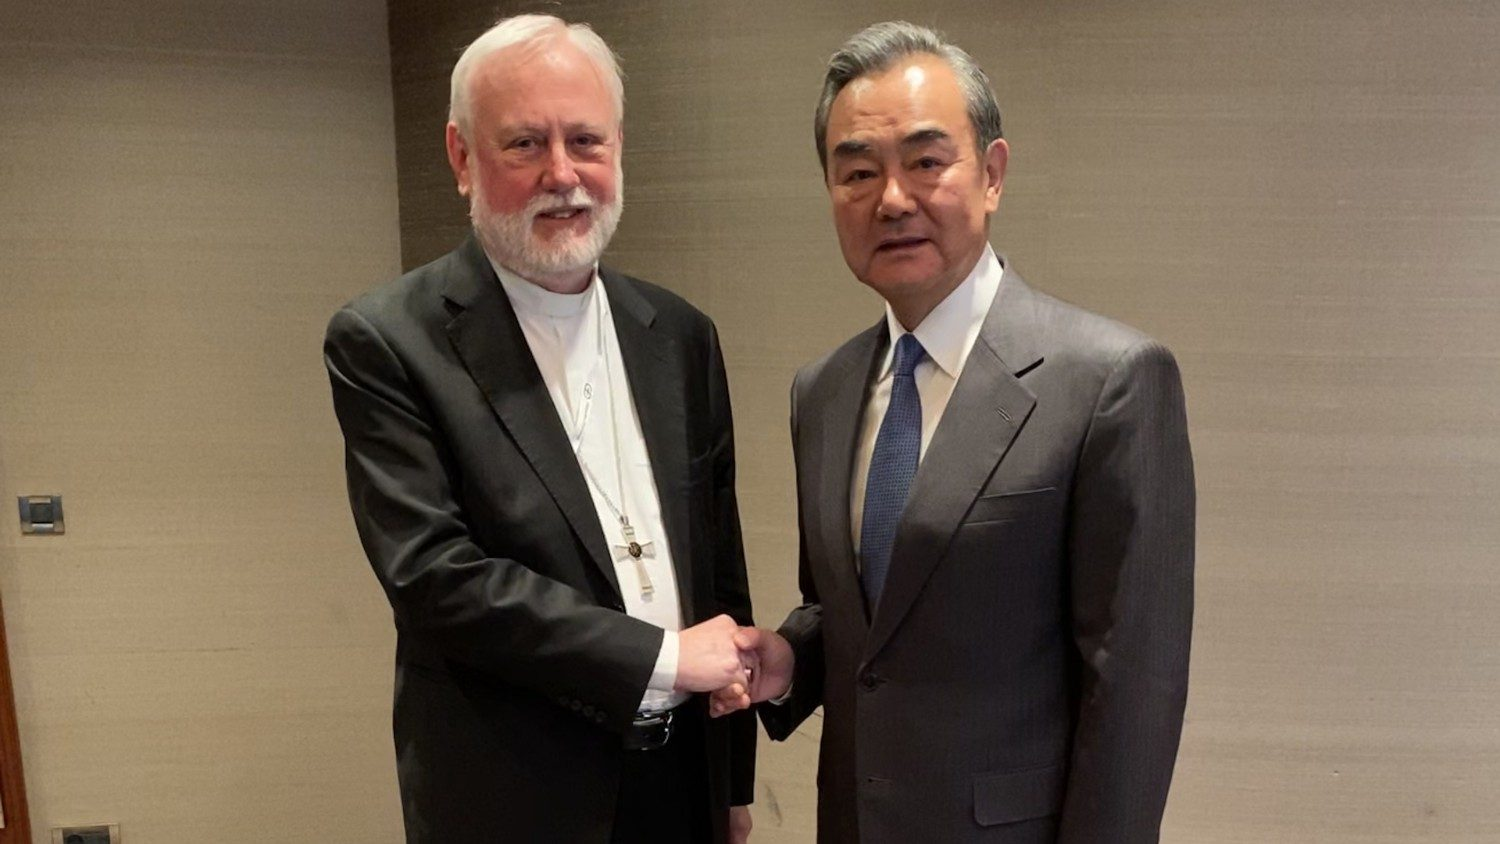 The Holy See and PRC: pursuing the path of dialogue - Vatican News